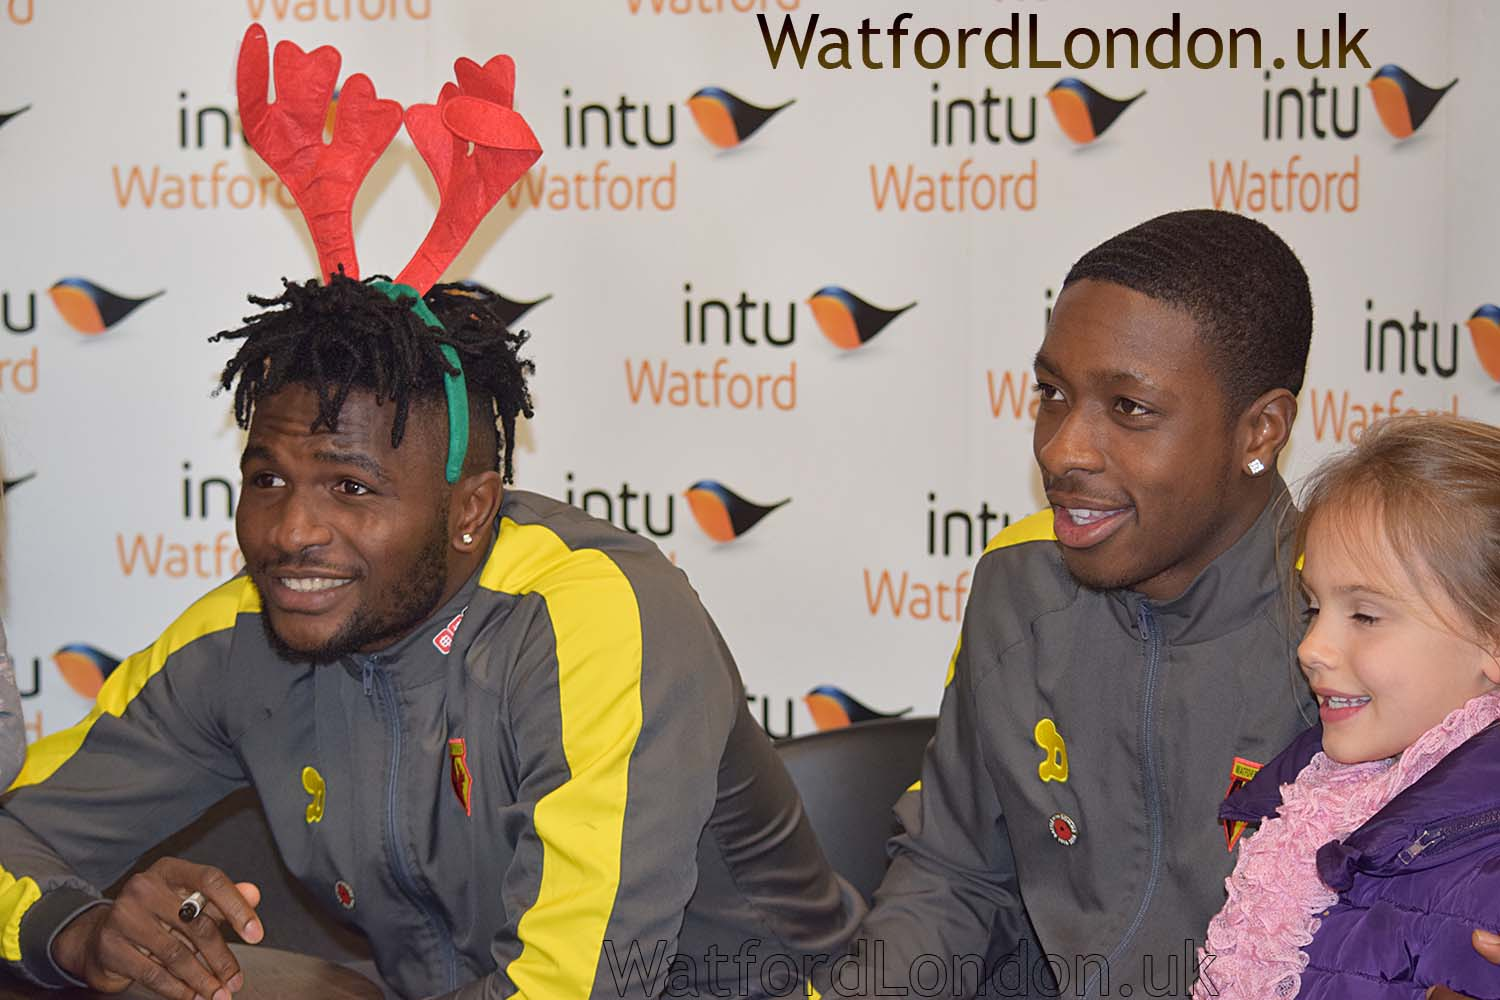 Watford FC autographed fans items plus free signed posters at the 2016 Christmas Lights on event